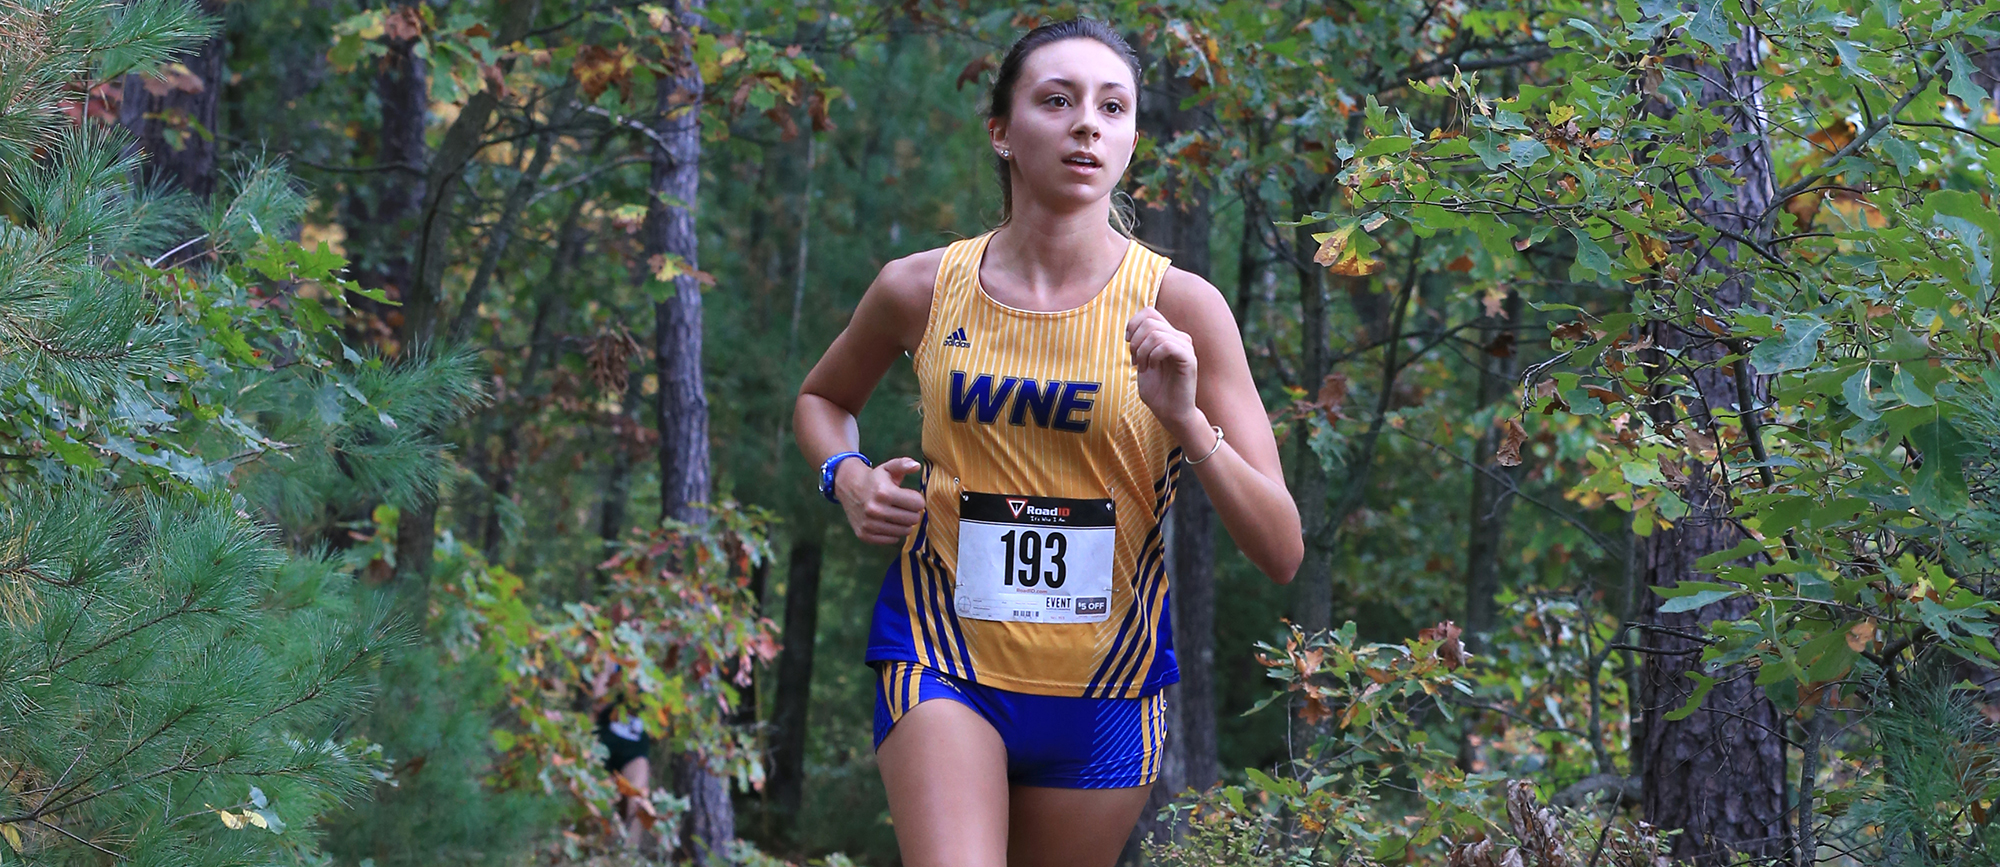 Junior Meagan Dias earned All-CCC honors for the second consecutive season with her seventh place finish (24:57.8) at the CCC Championship on Saturday (Photo by Doug Steinbock).